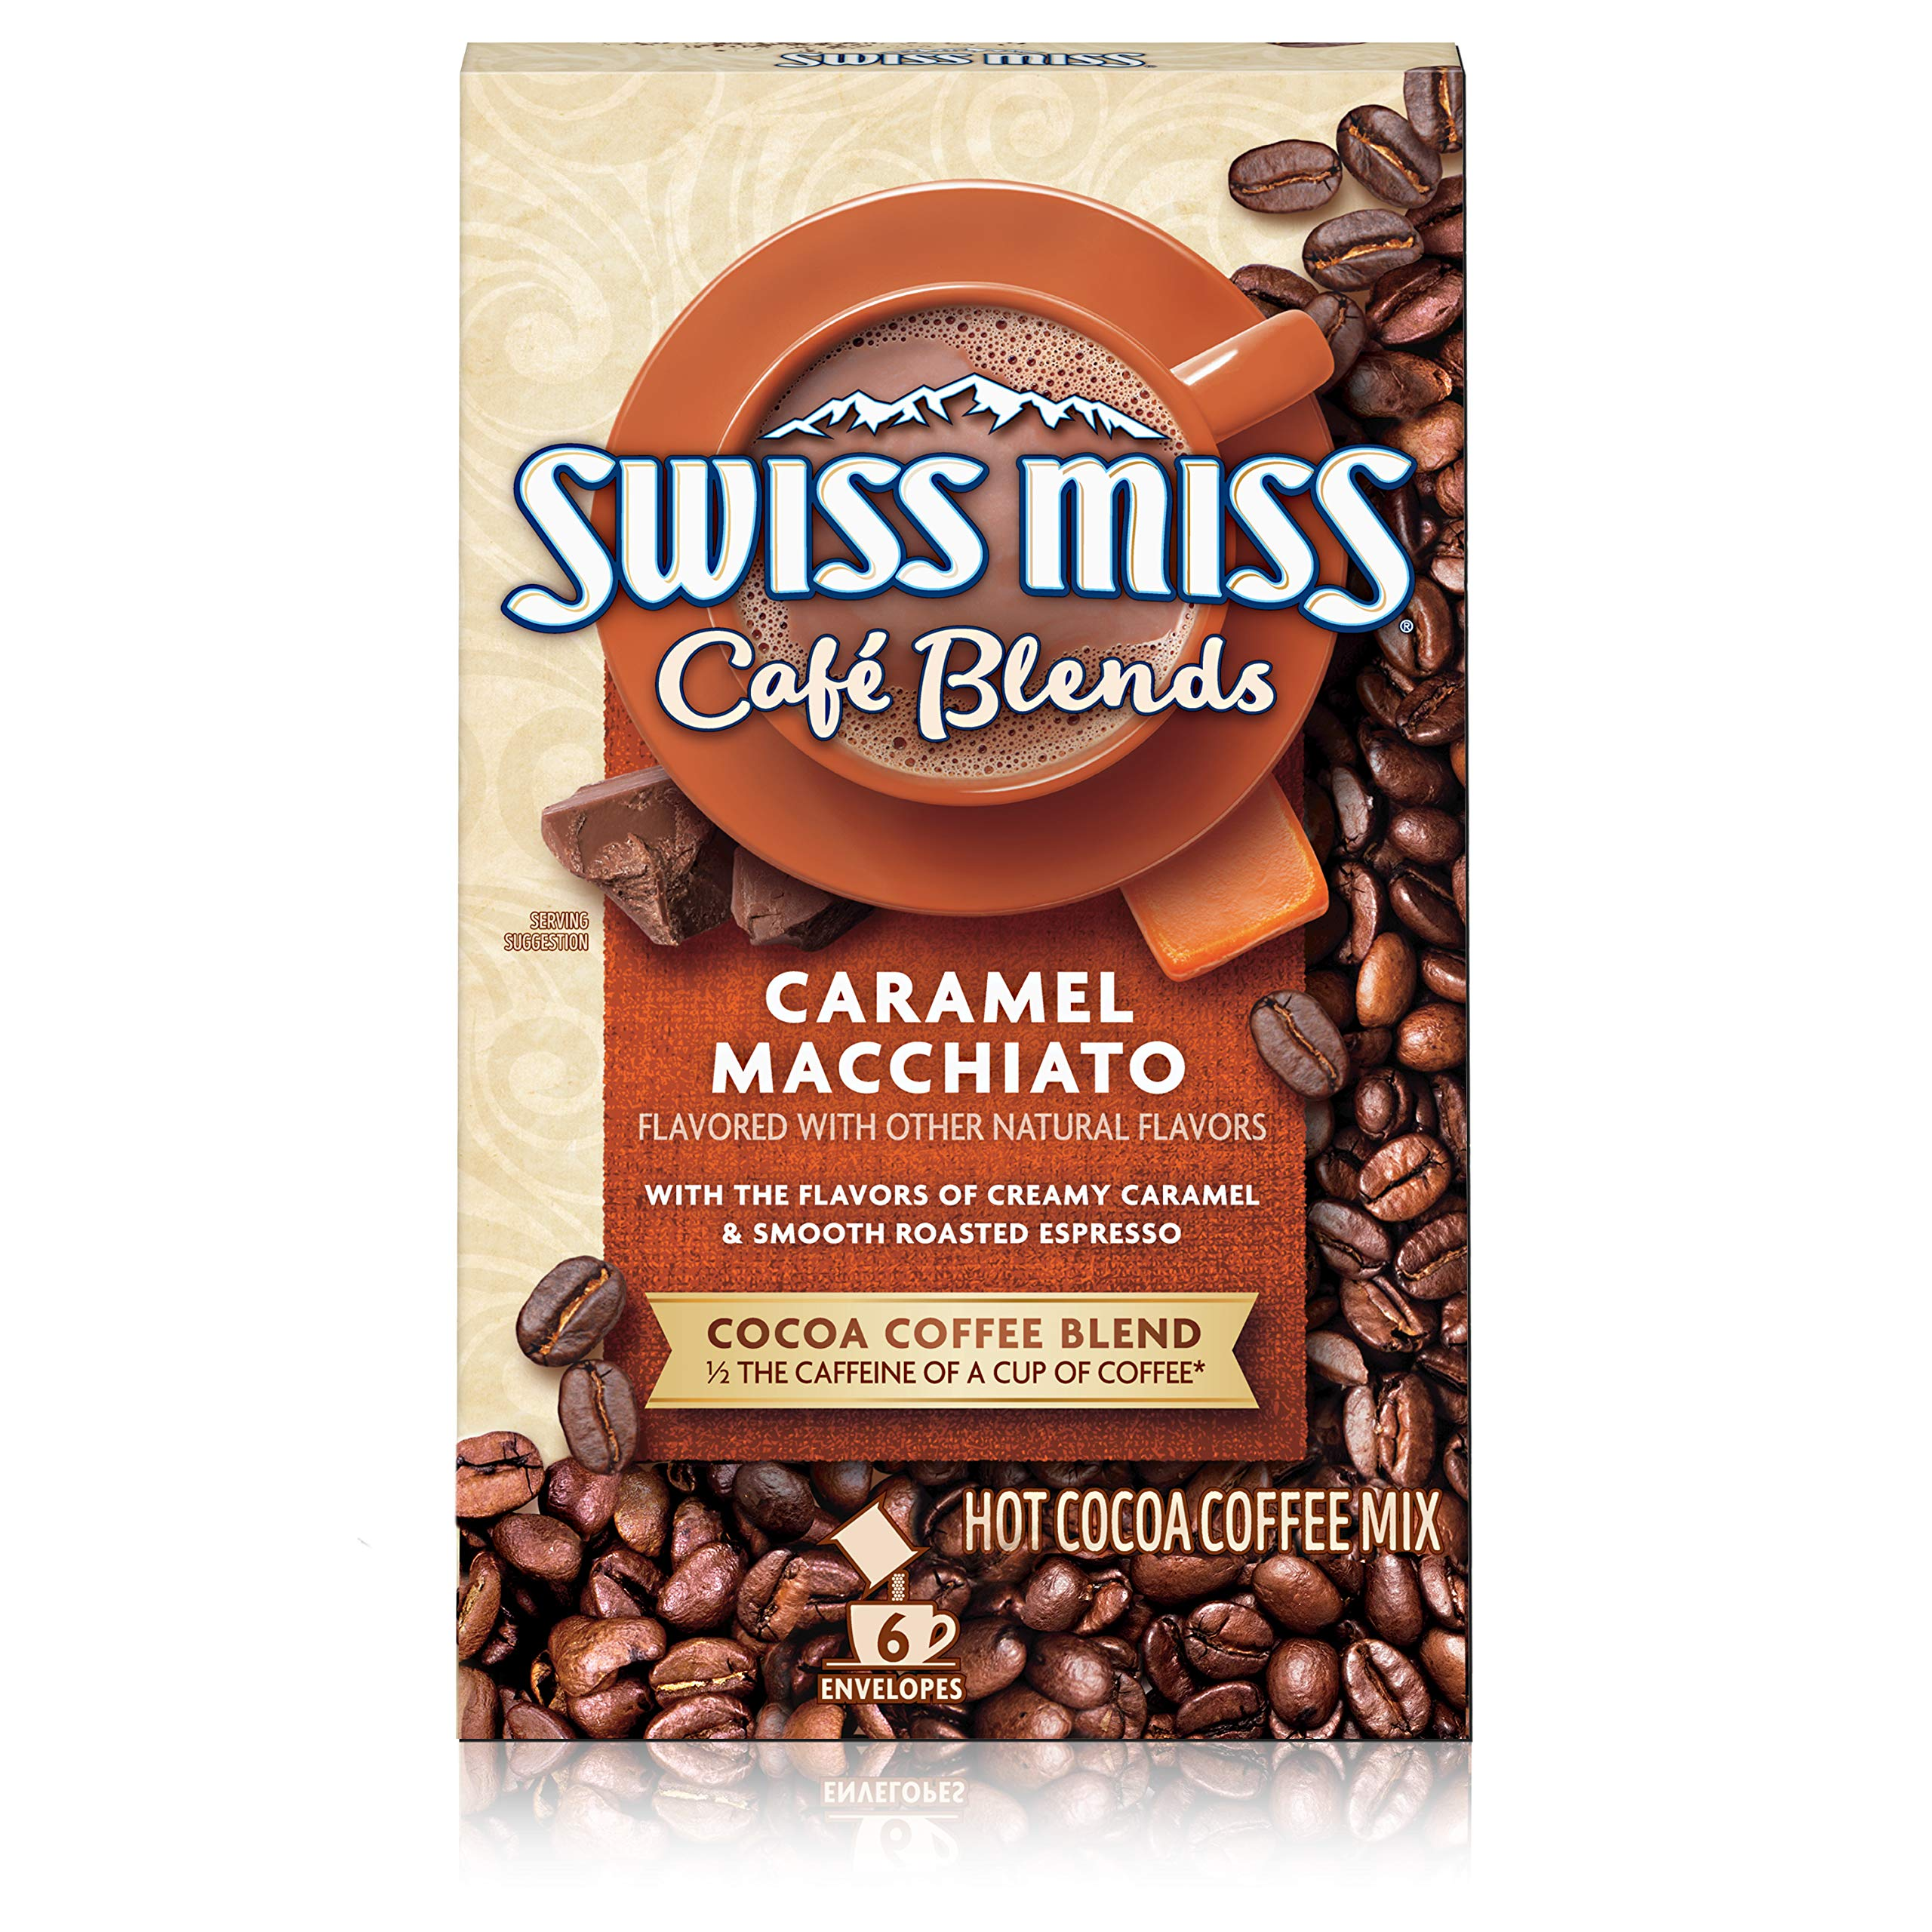 Swiss Miss Café Blends Caramel Macchiato Flavored Hot Cocoa Coffee Mix, 1.38 oz. 6-Count